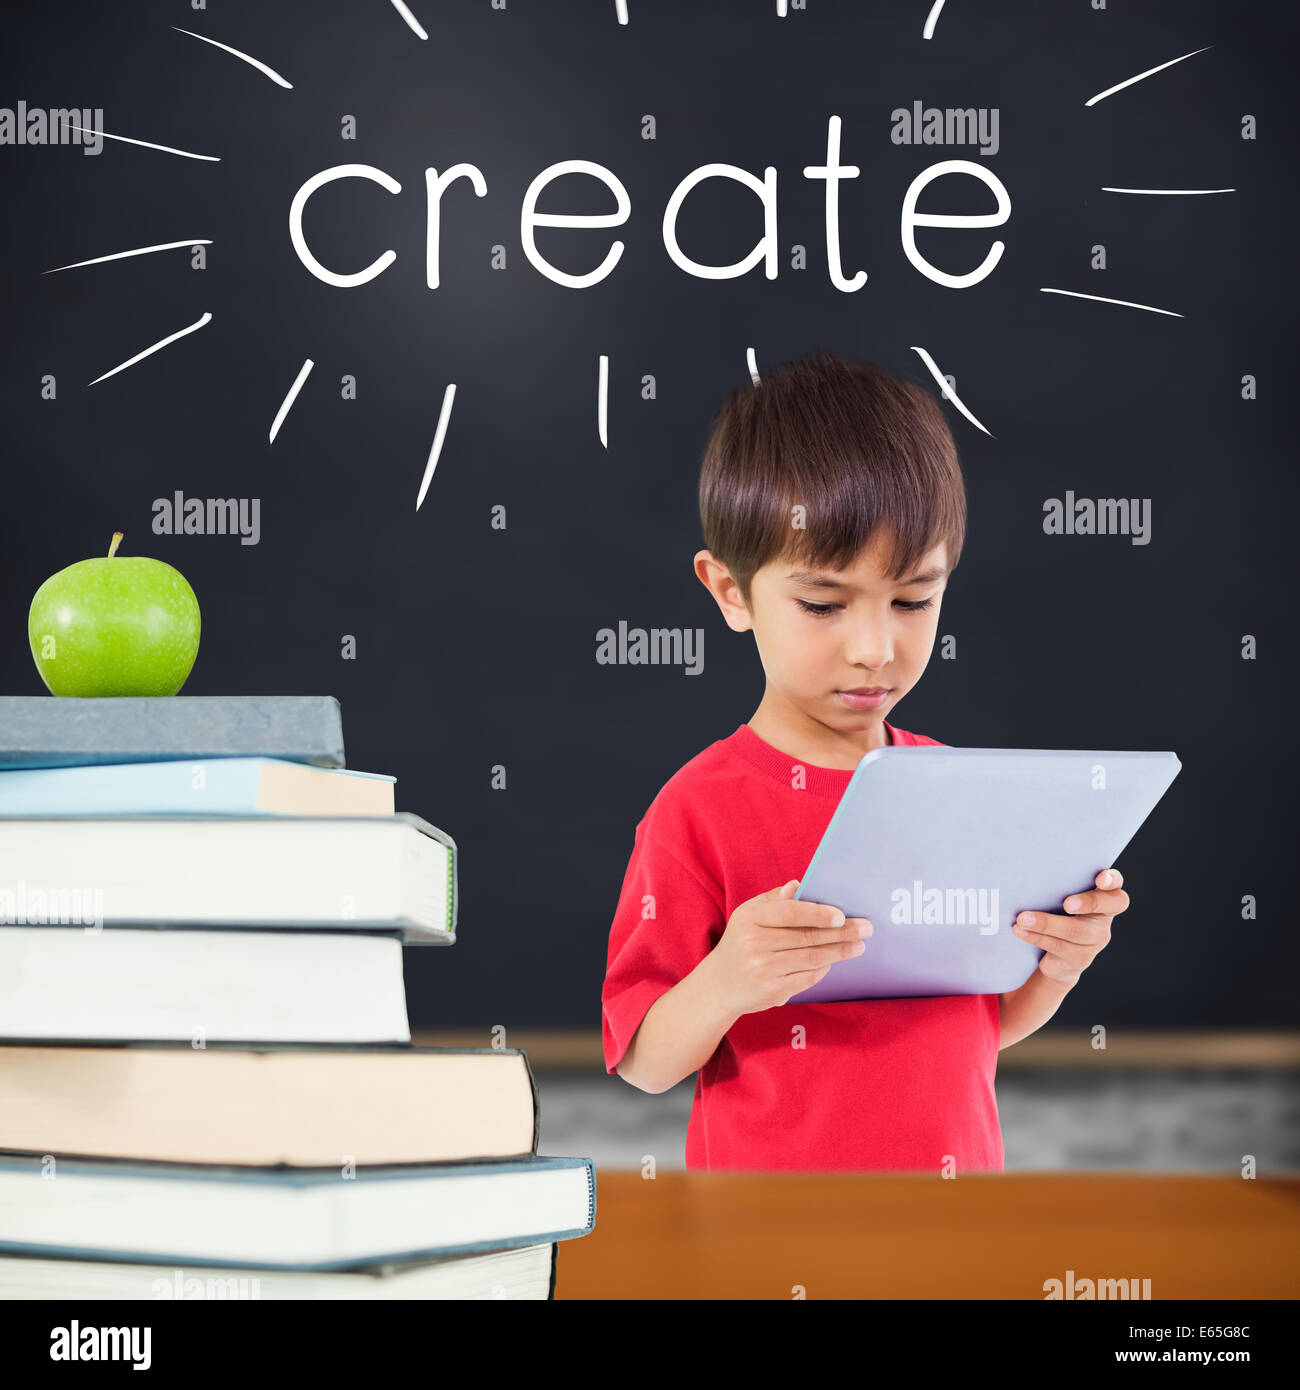 Create against green apple on pile of books in classroom - Stock Image